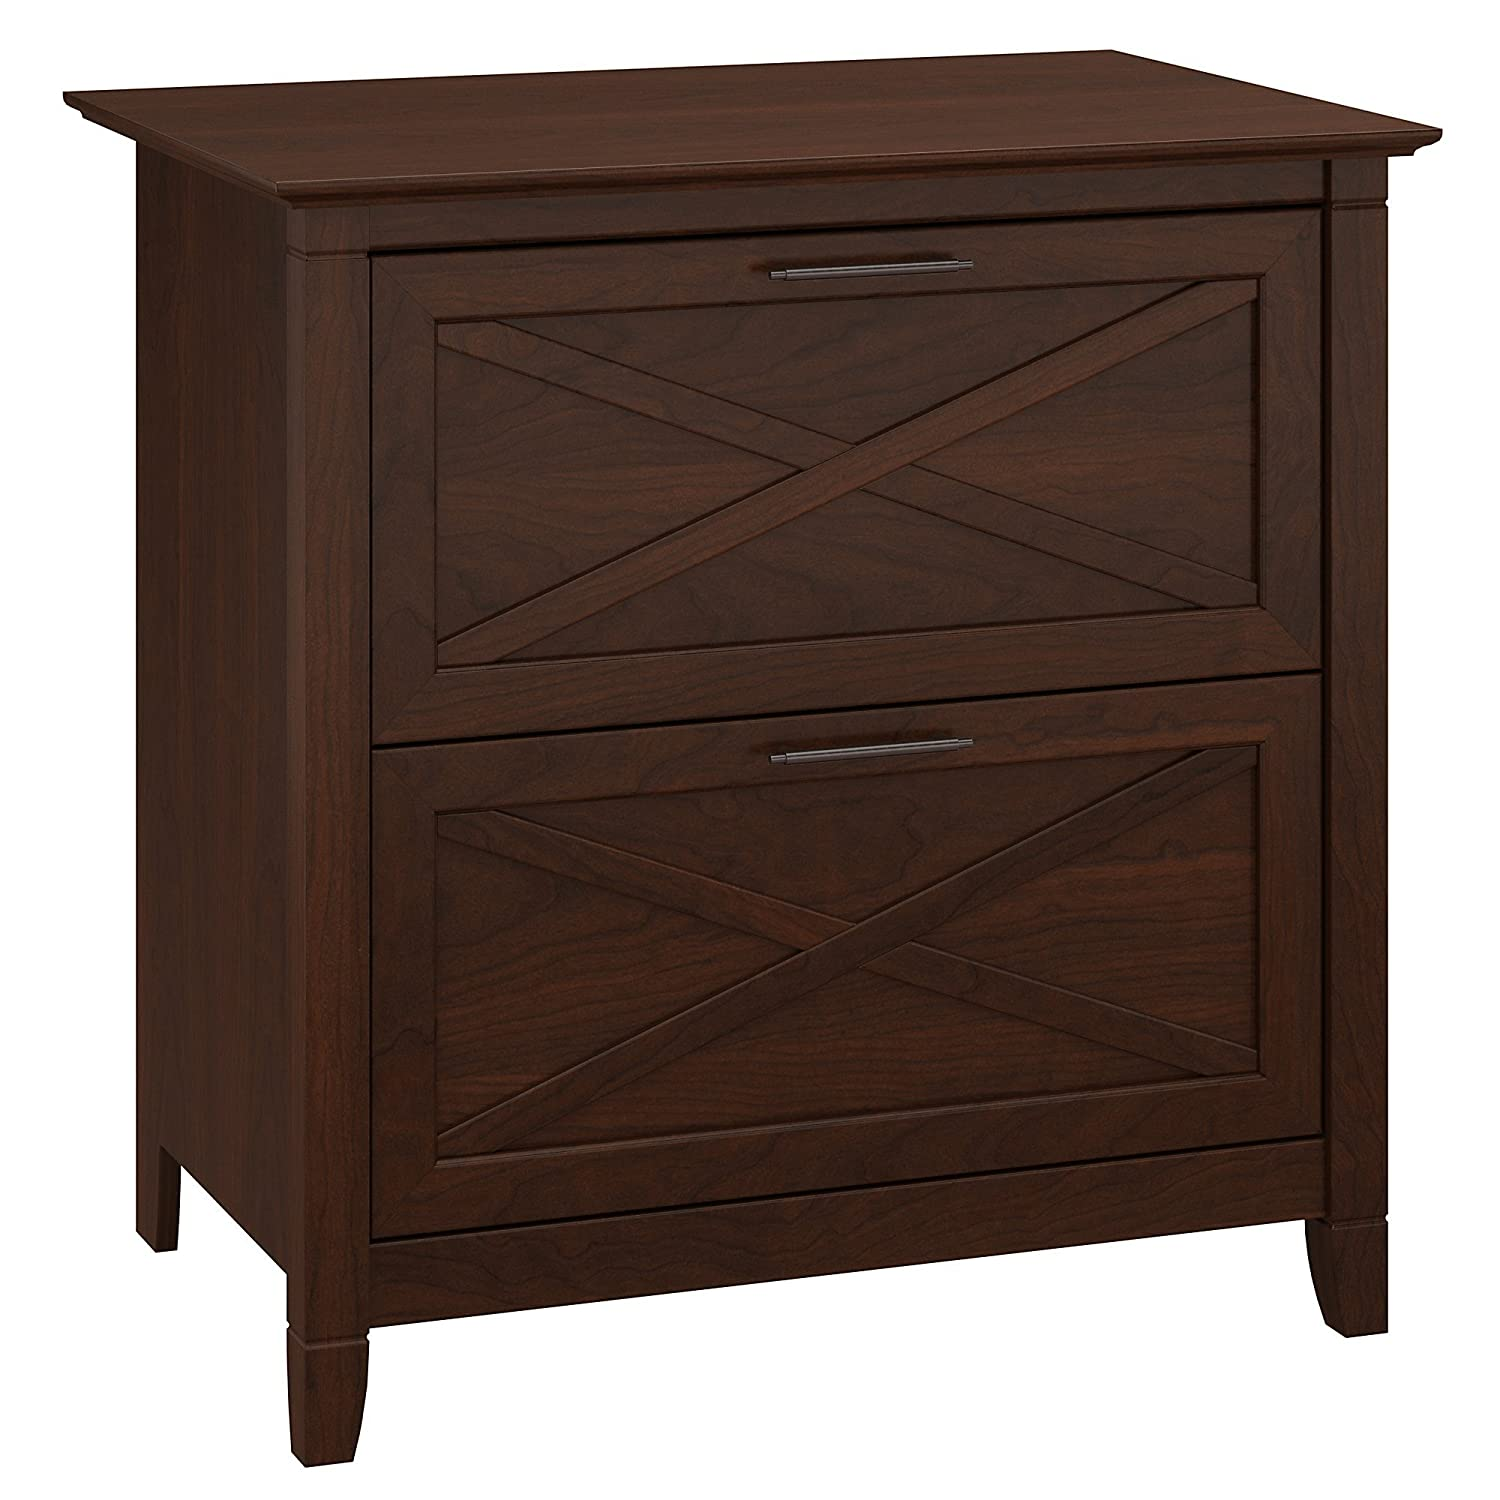 Bush Furniture Key West 2 Drawer Lateral File Cabinet in Bing Cherry Bush Industries KWF130BC-03